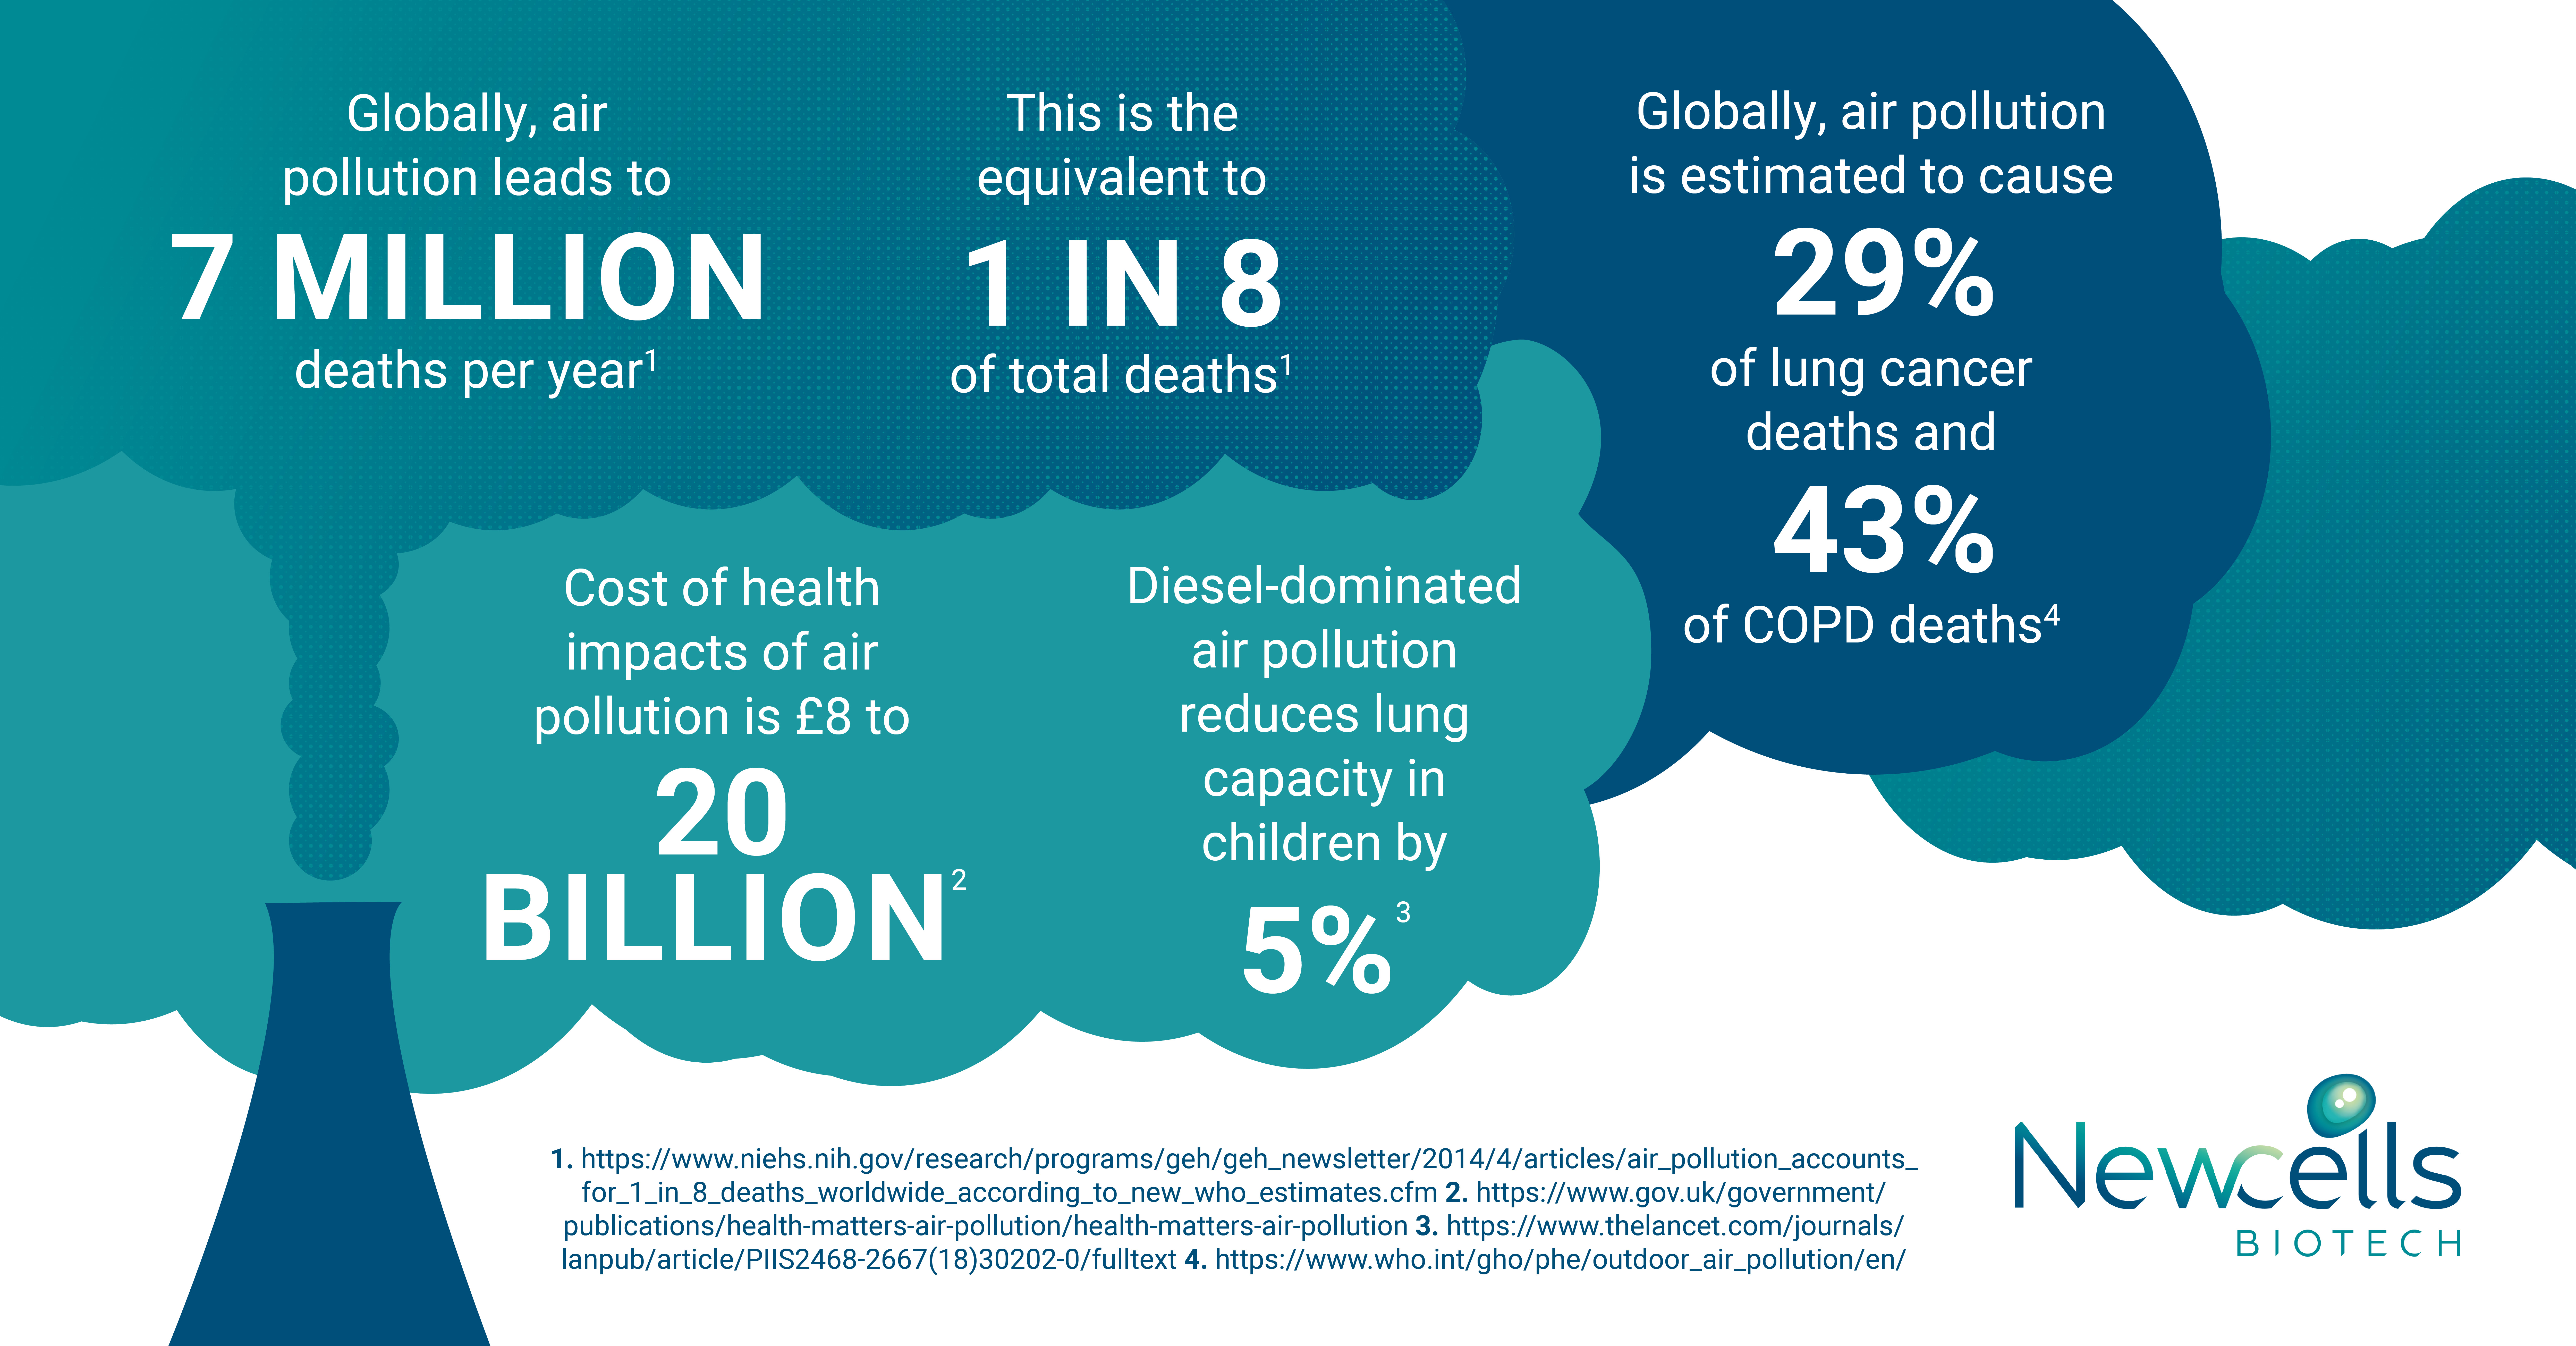 Impacts of air pollution on the lung